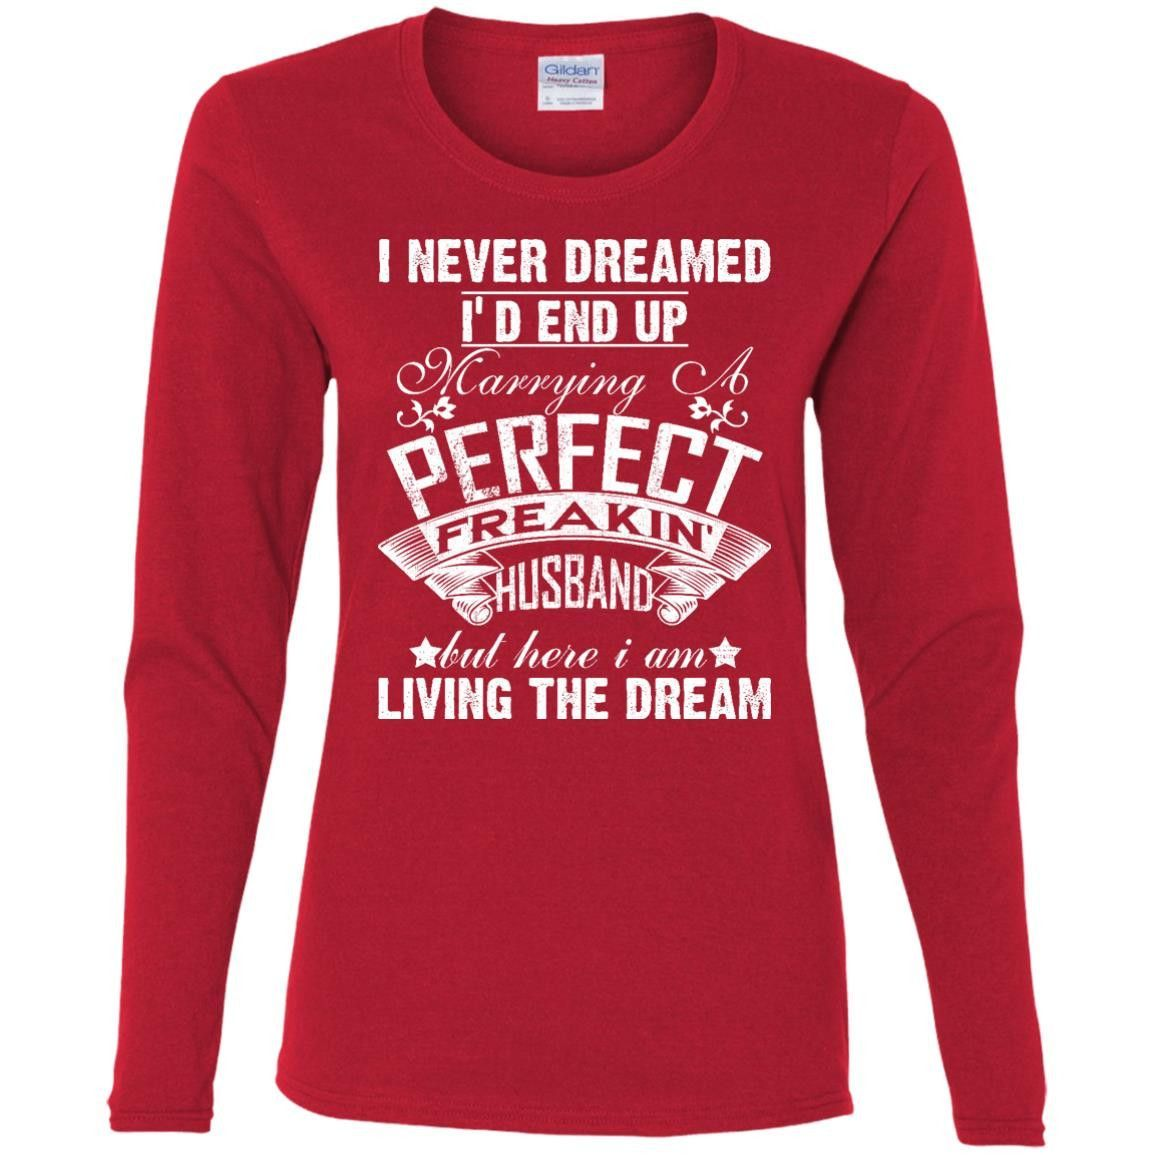 I Never Dreamed I'd End Up Marrying A Perfect Freakin' Husband but here i am Living the Dream G540L Gildan Ladies' Cotton LS T-Shirt